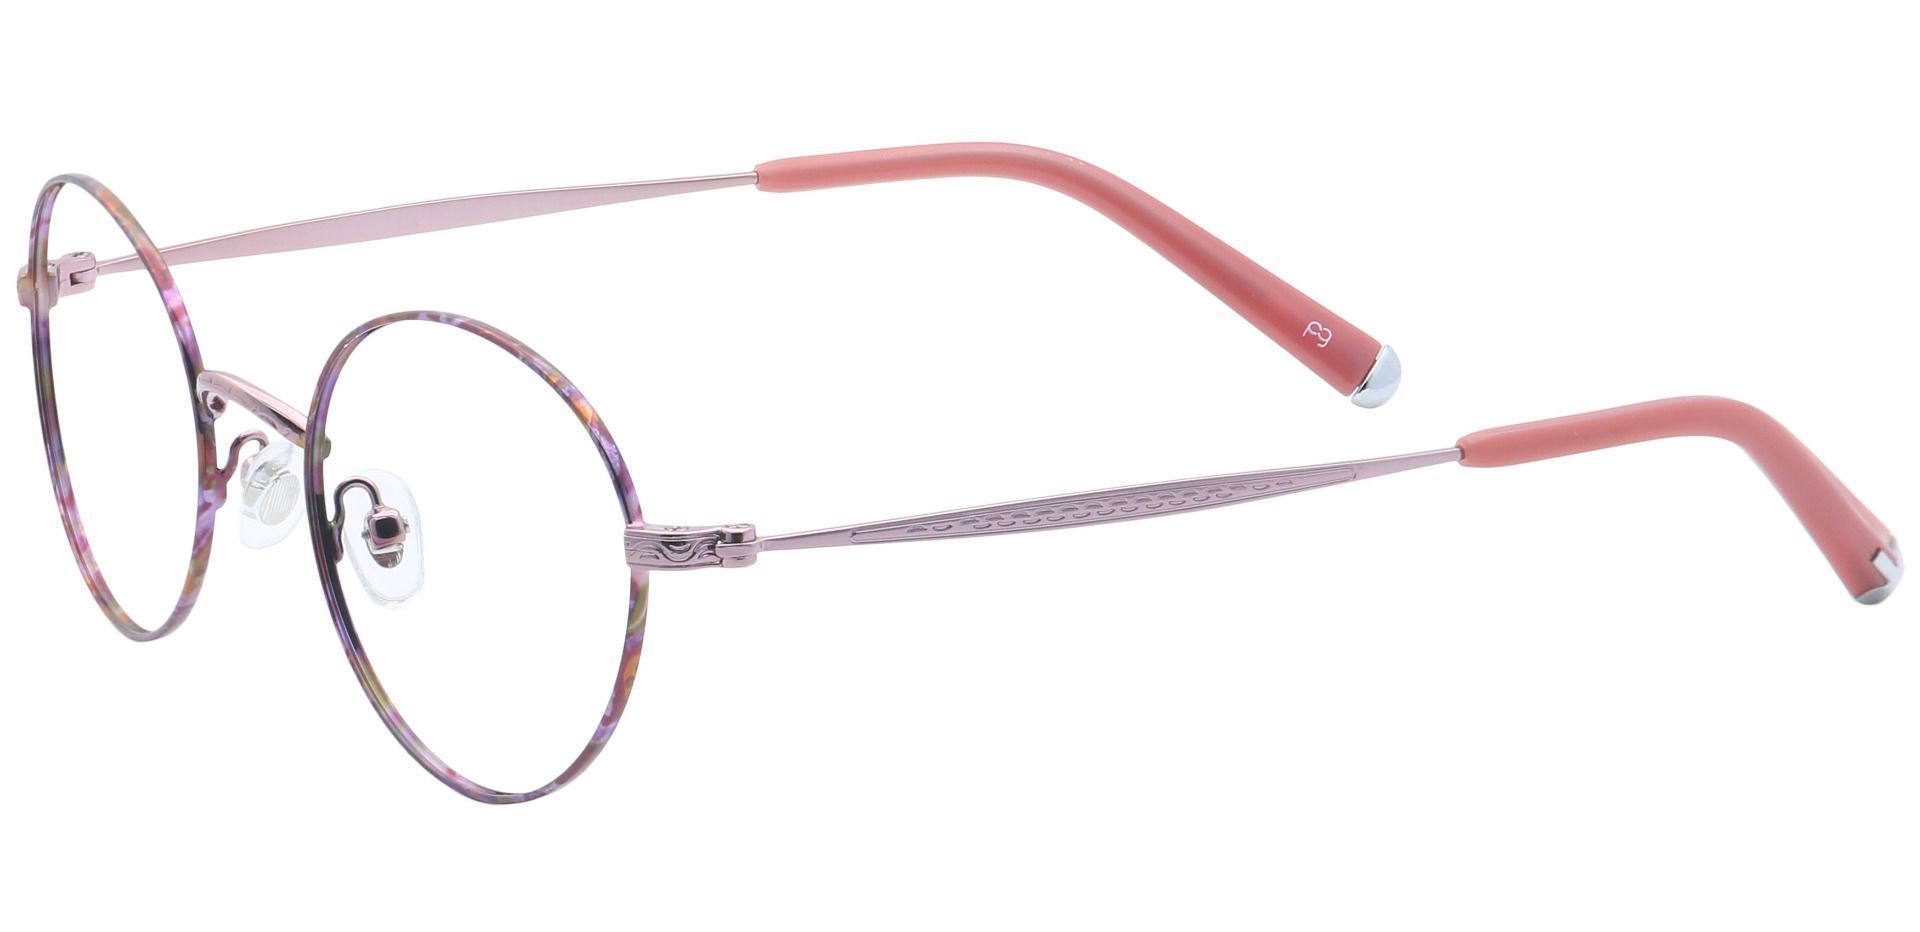 Skylar Round Reading Glasses - Red